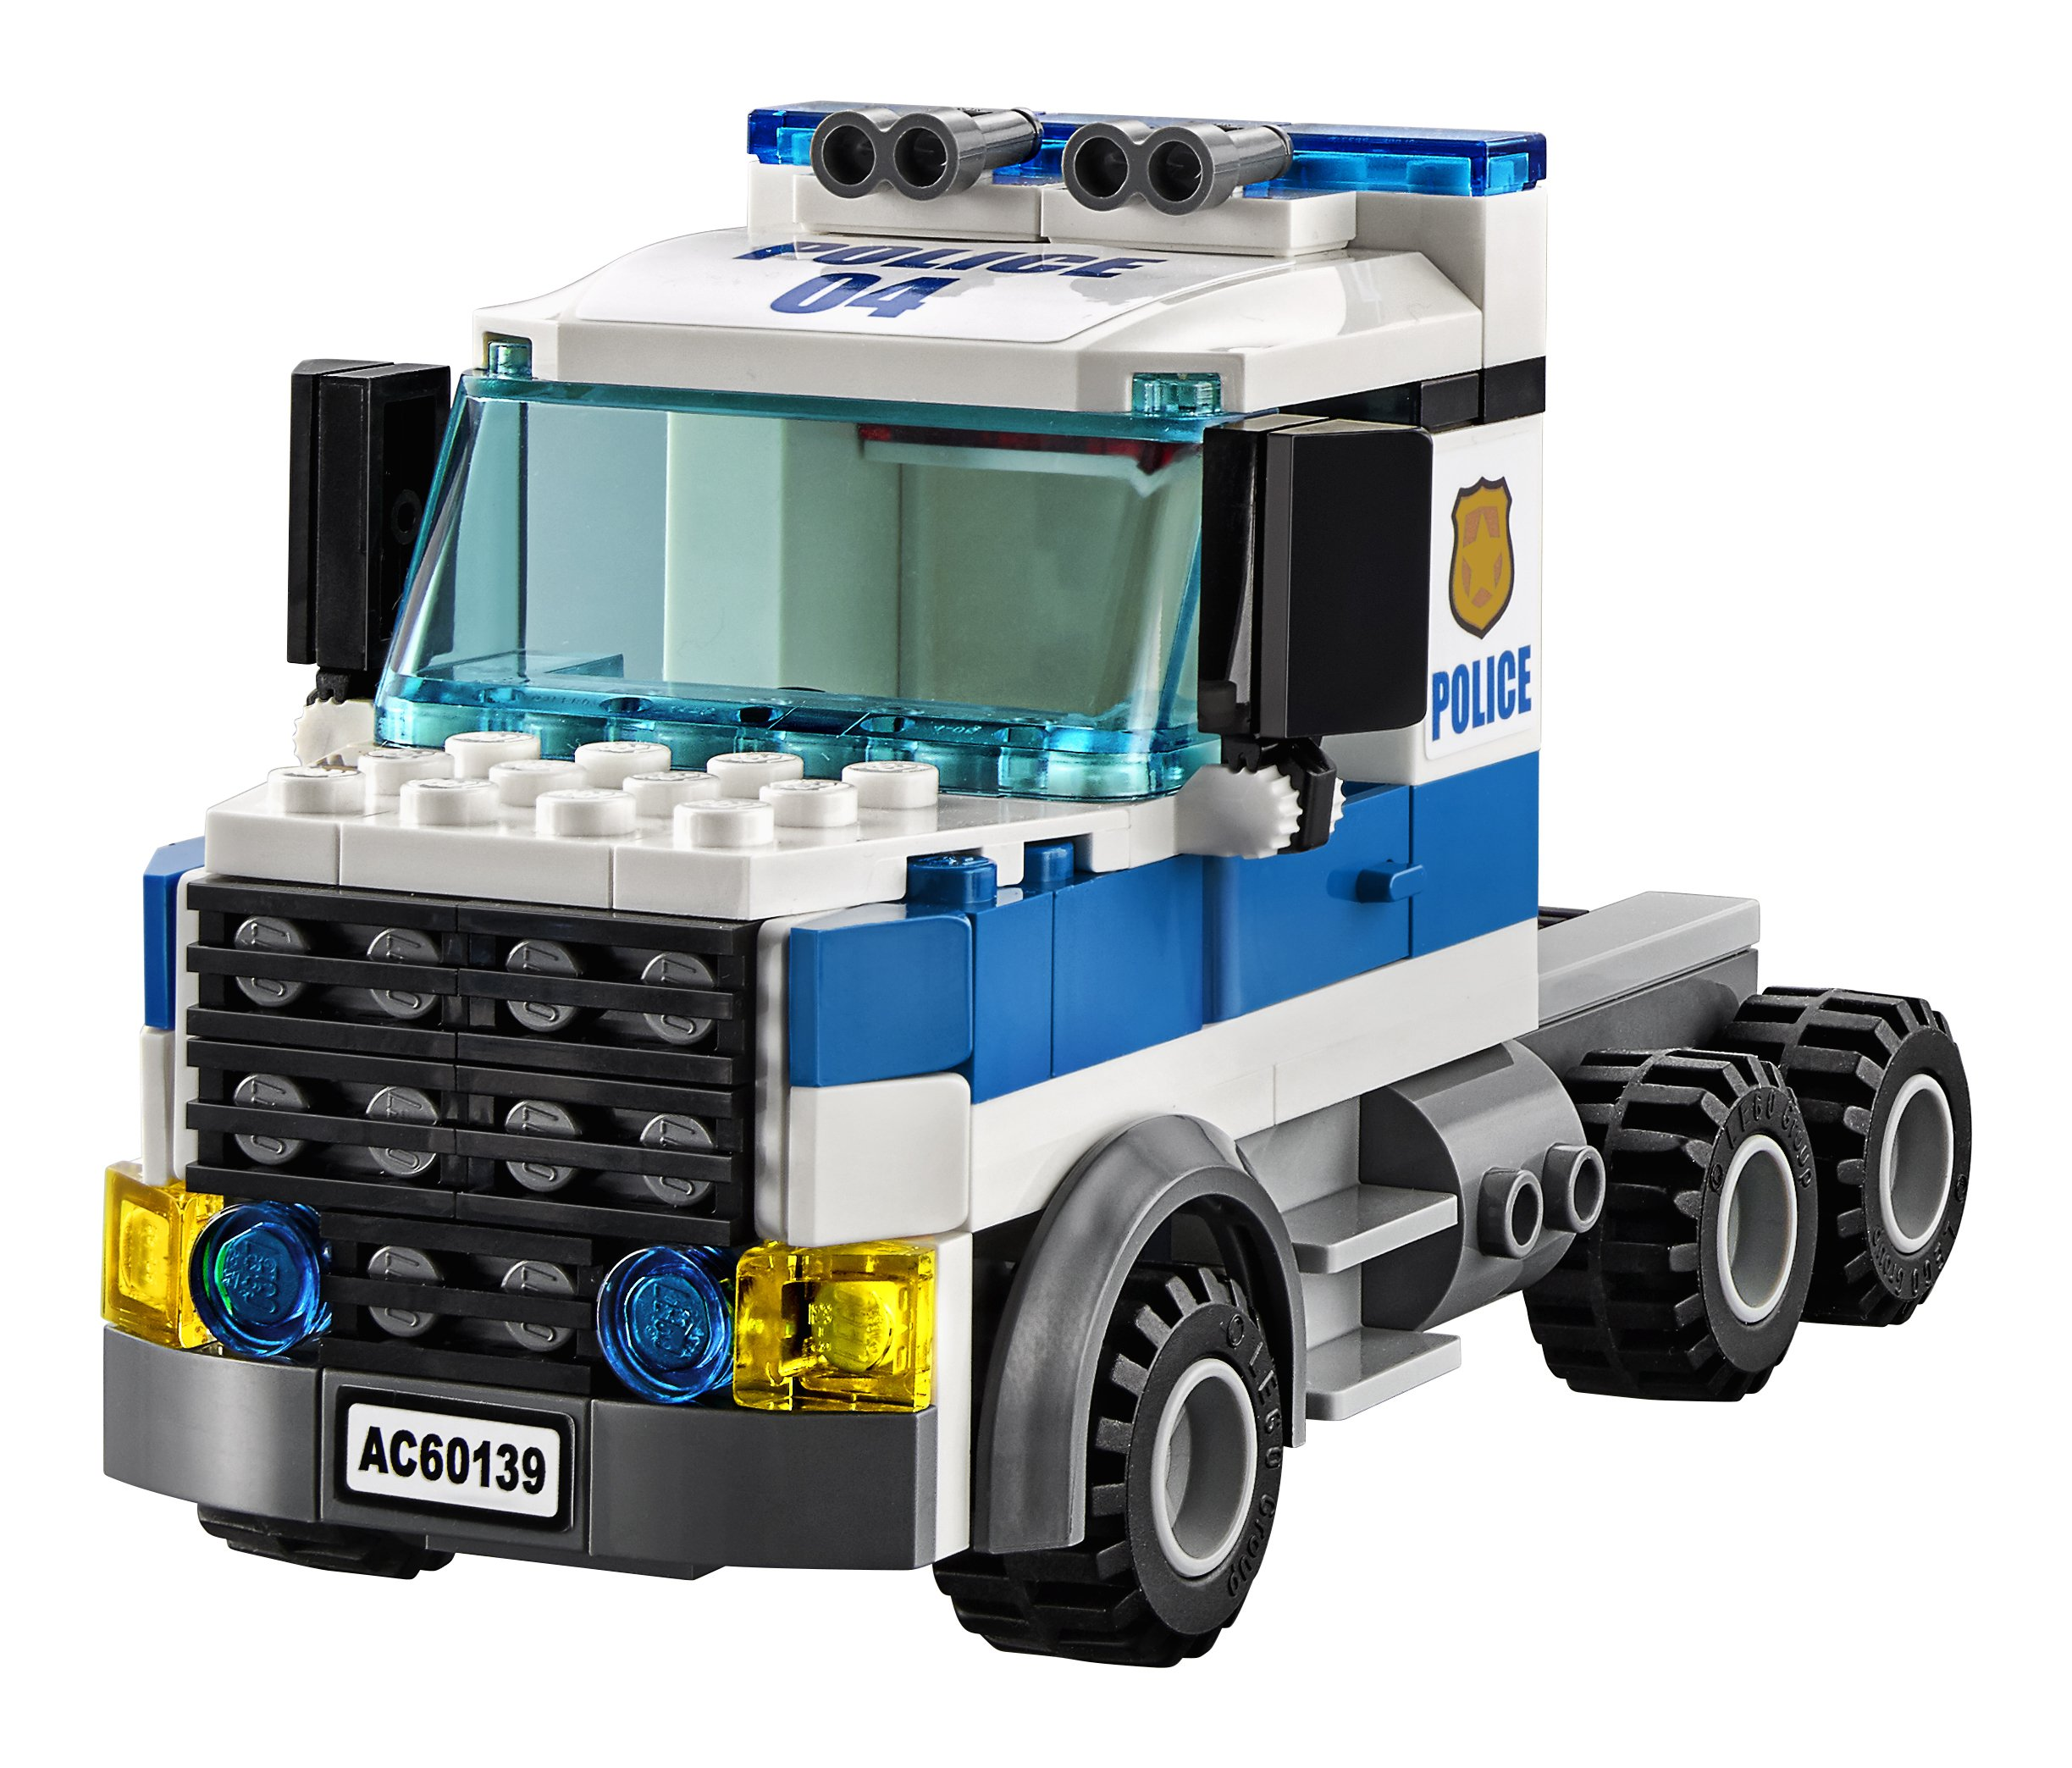 LEGO City Police Mobile Command Center 60139 Building Toy by LEGO (Image #8)